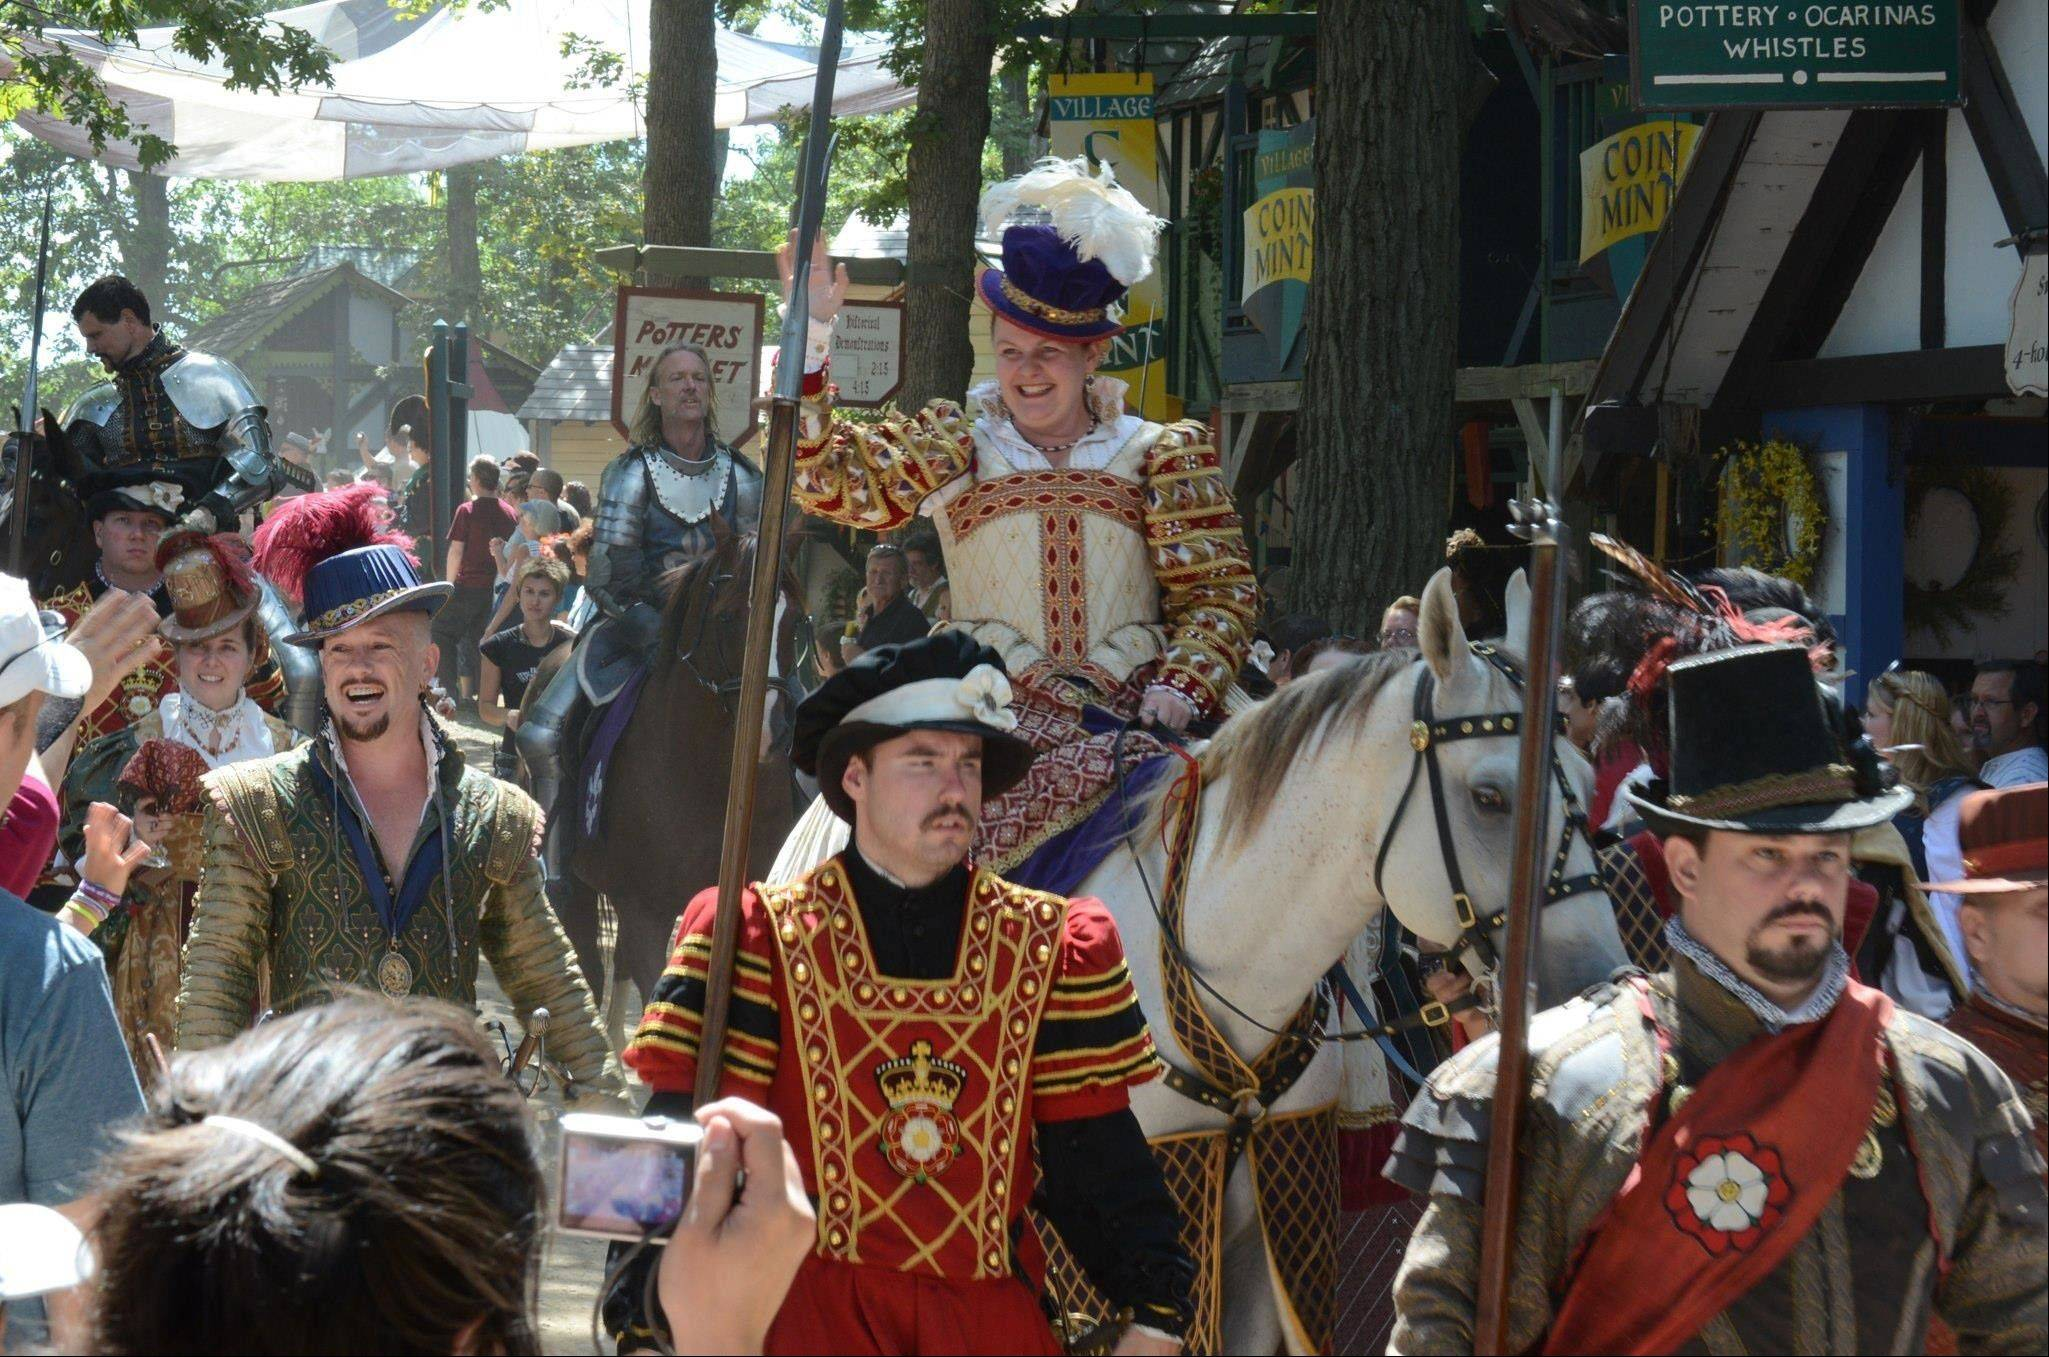 The Bristol Renaissance Faire returns for the 2013 summer season starting Saturday, July 6.